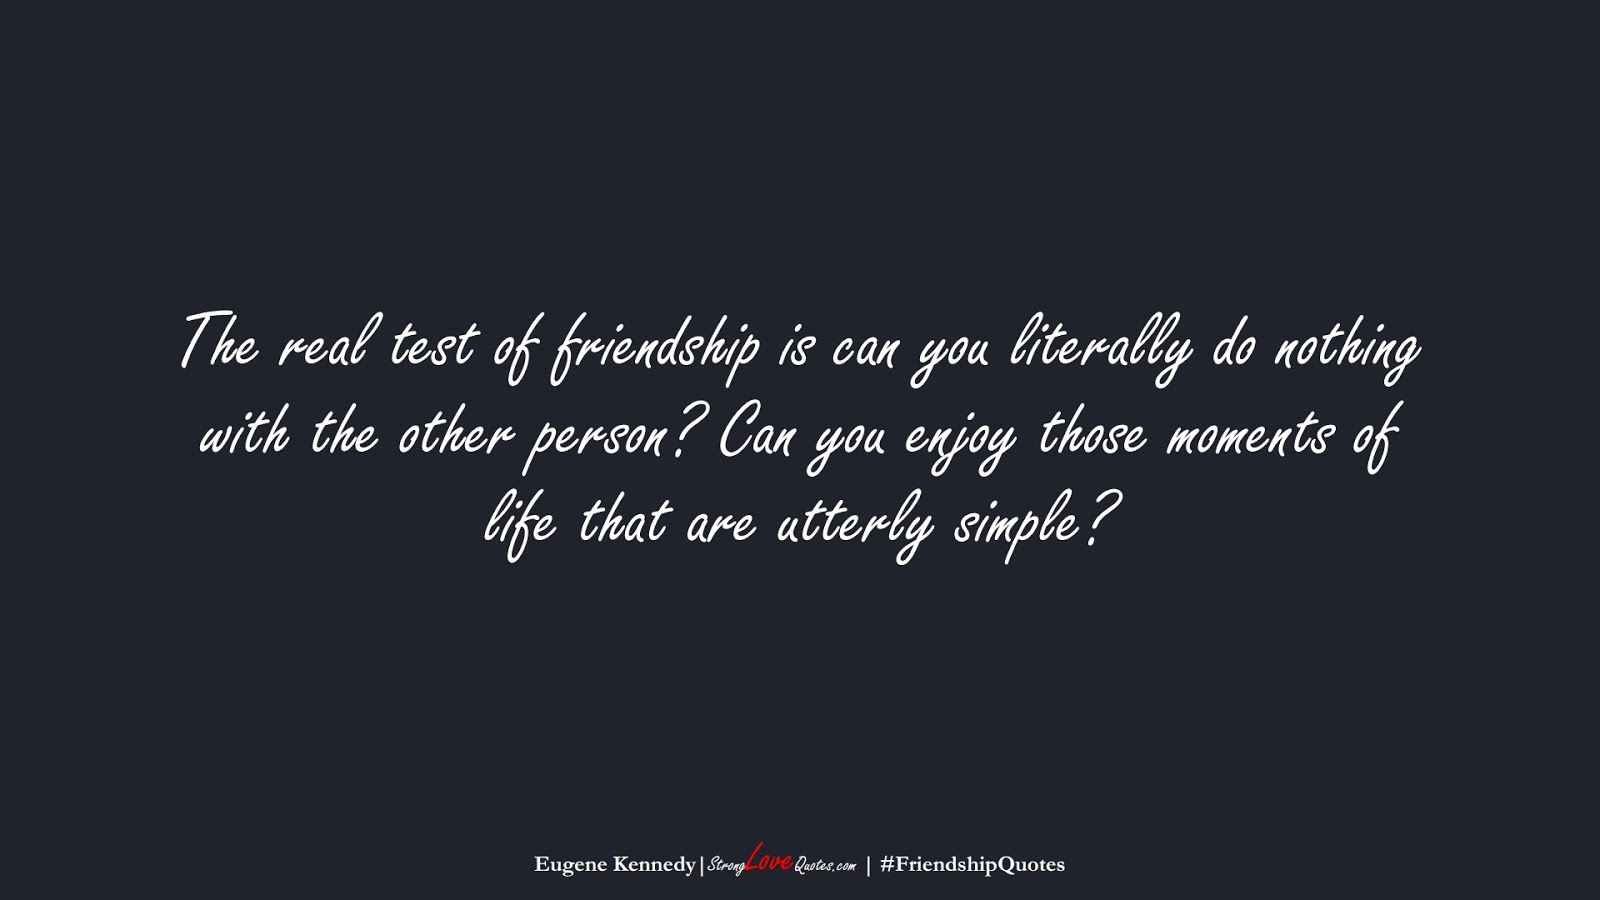 The real test of friendship is can you literally do nothing with the other person? Can you enjoy those moments of life that are utterly simple? (Eugene Kennedy);  #FriendshipQuotes